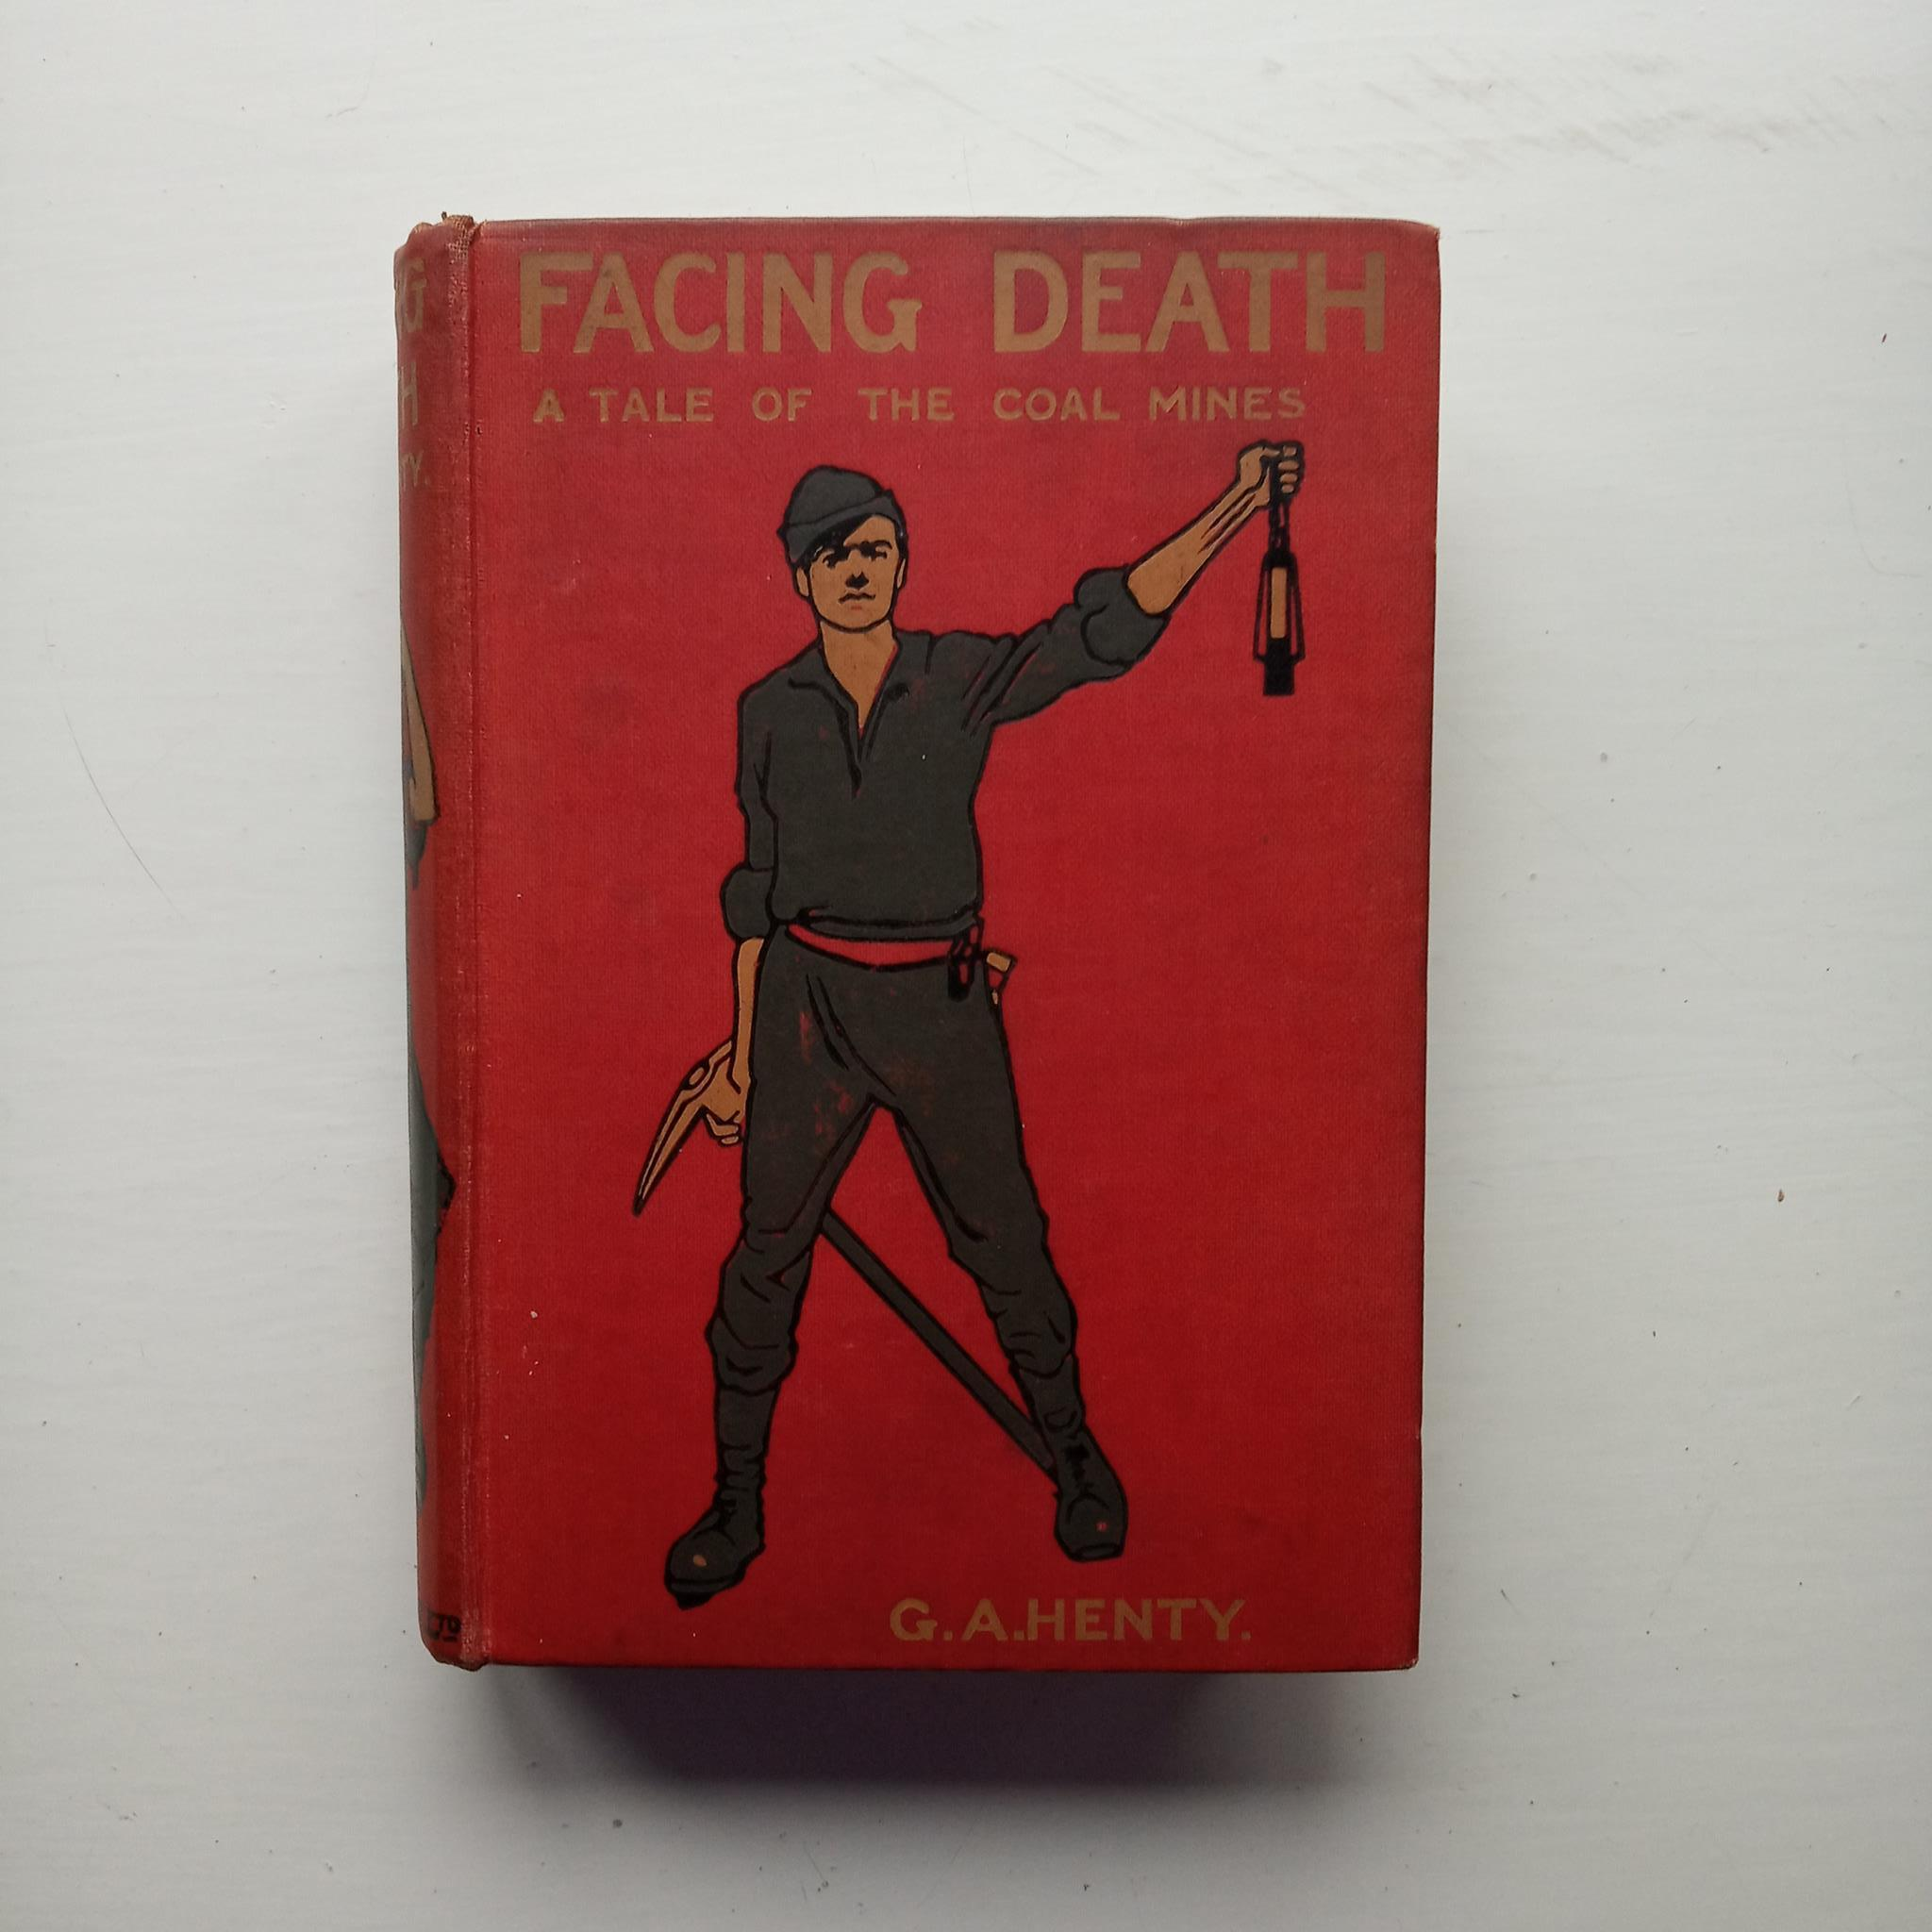 Facing Death: A Tale of the Coal Mines by G.A. Henty